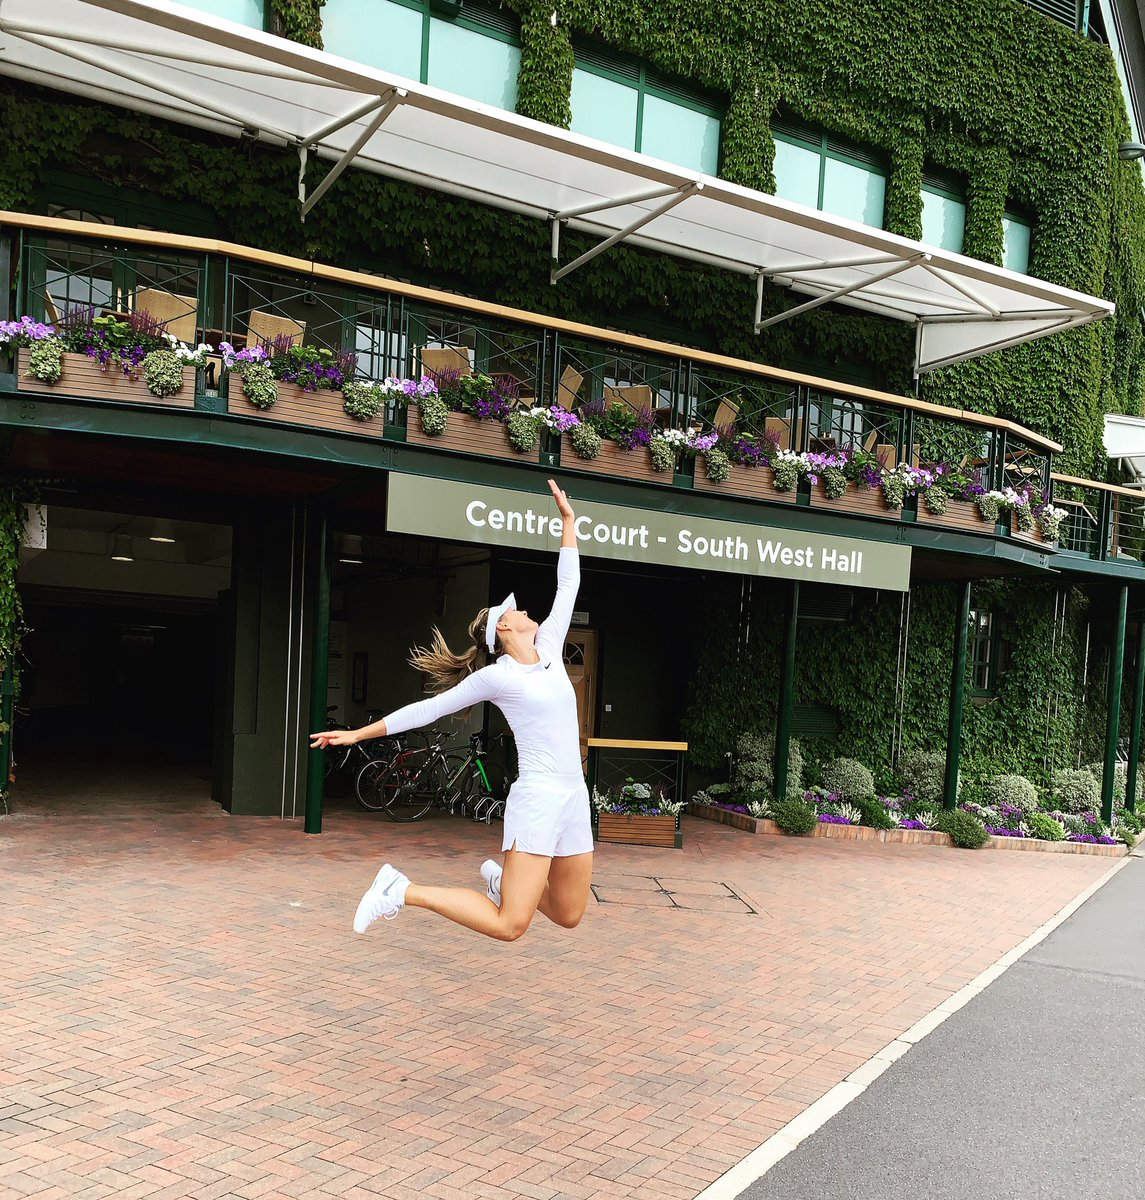 There's just really nothing like it ????????♀️ @Wimbledon https://t.co/ABSVr8j9Me